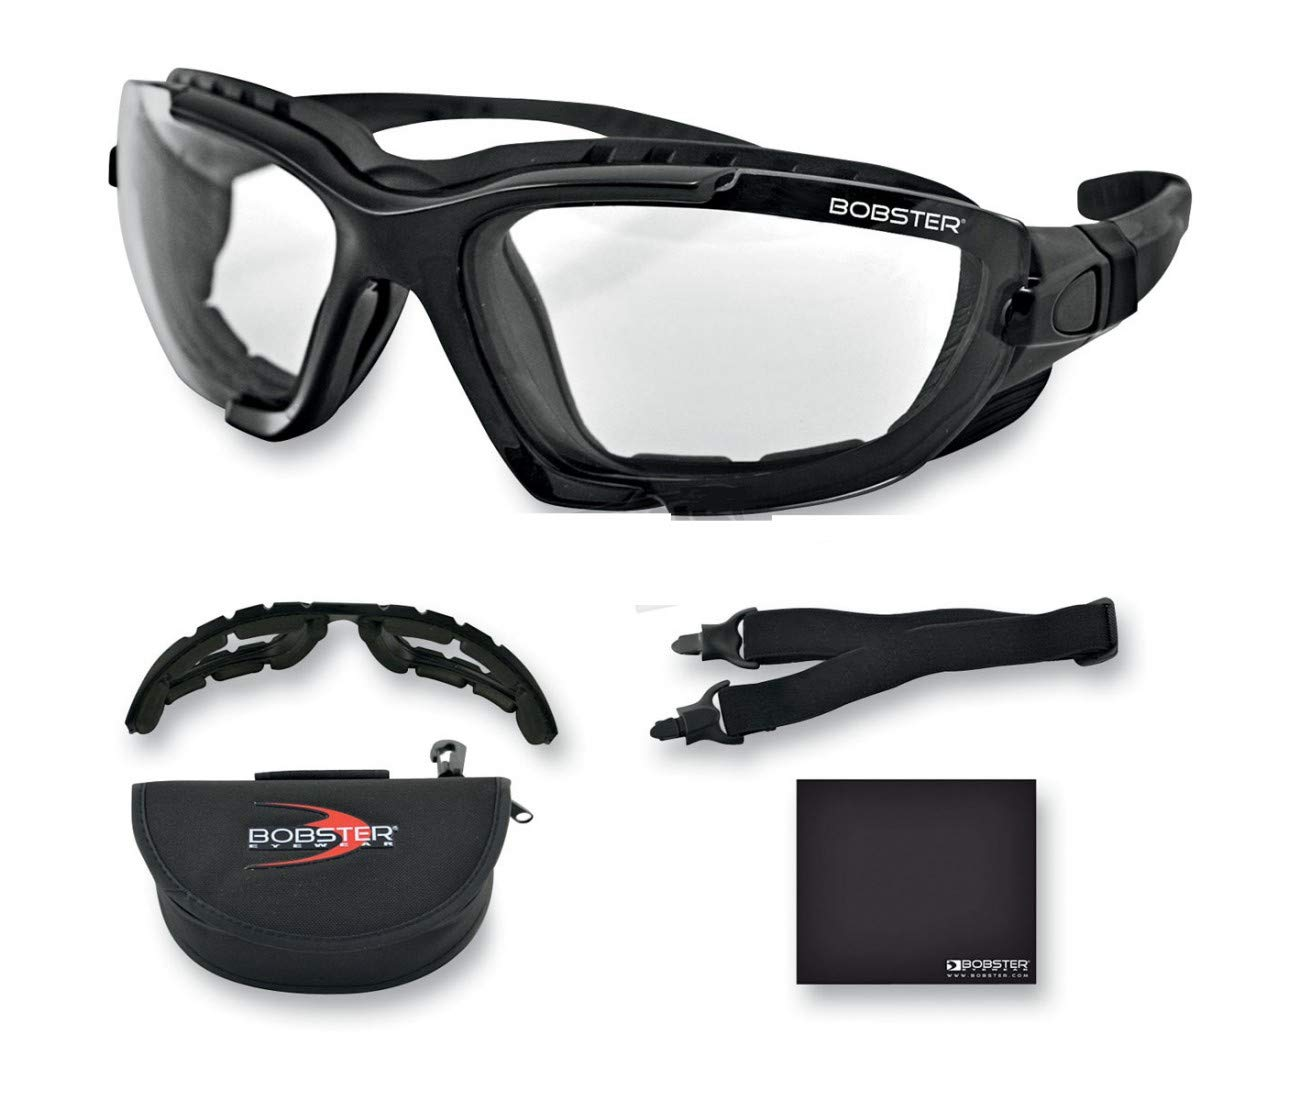 LUNETTES BOBSTER MOTO-SCOOTER-RENEGADE PHOTOCHROMIC-2610-0429 PRO